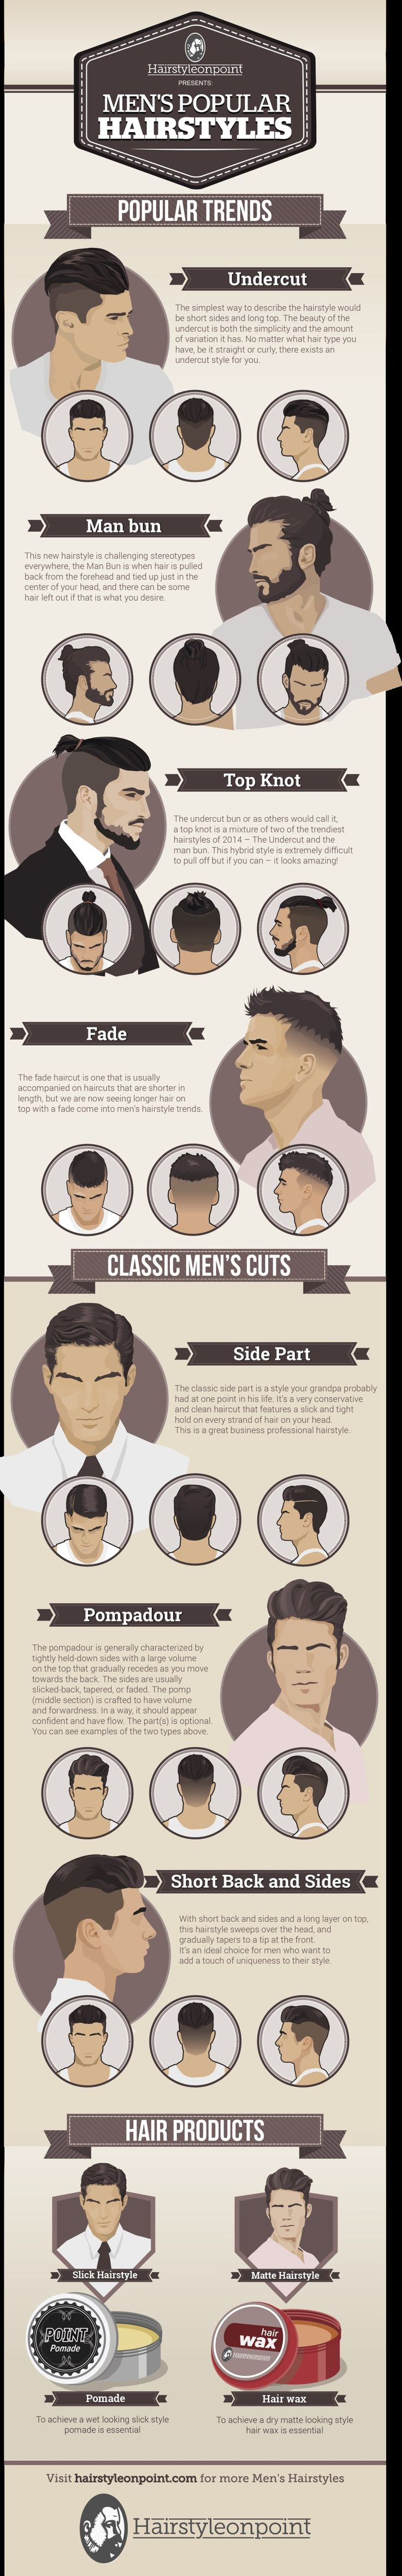 Luckily, men's style blog Hairstyleonpoint created an amazing chart to show what's hot in men's hair, with added suggestions on what products to use. | These Are The Hottest Men's Hairstyle Trends Right Now